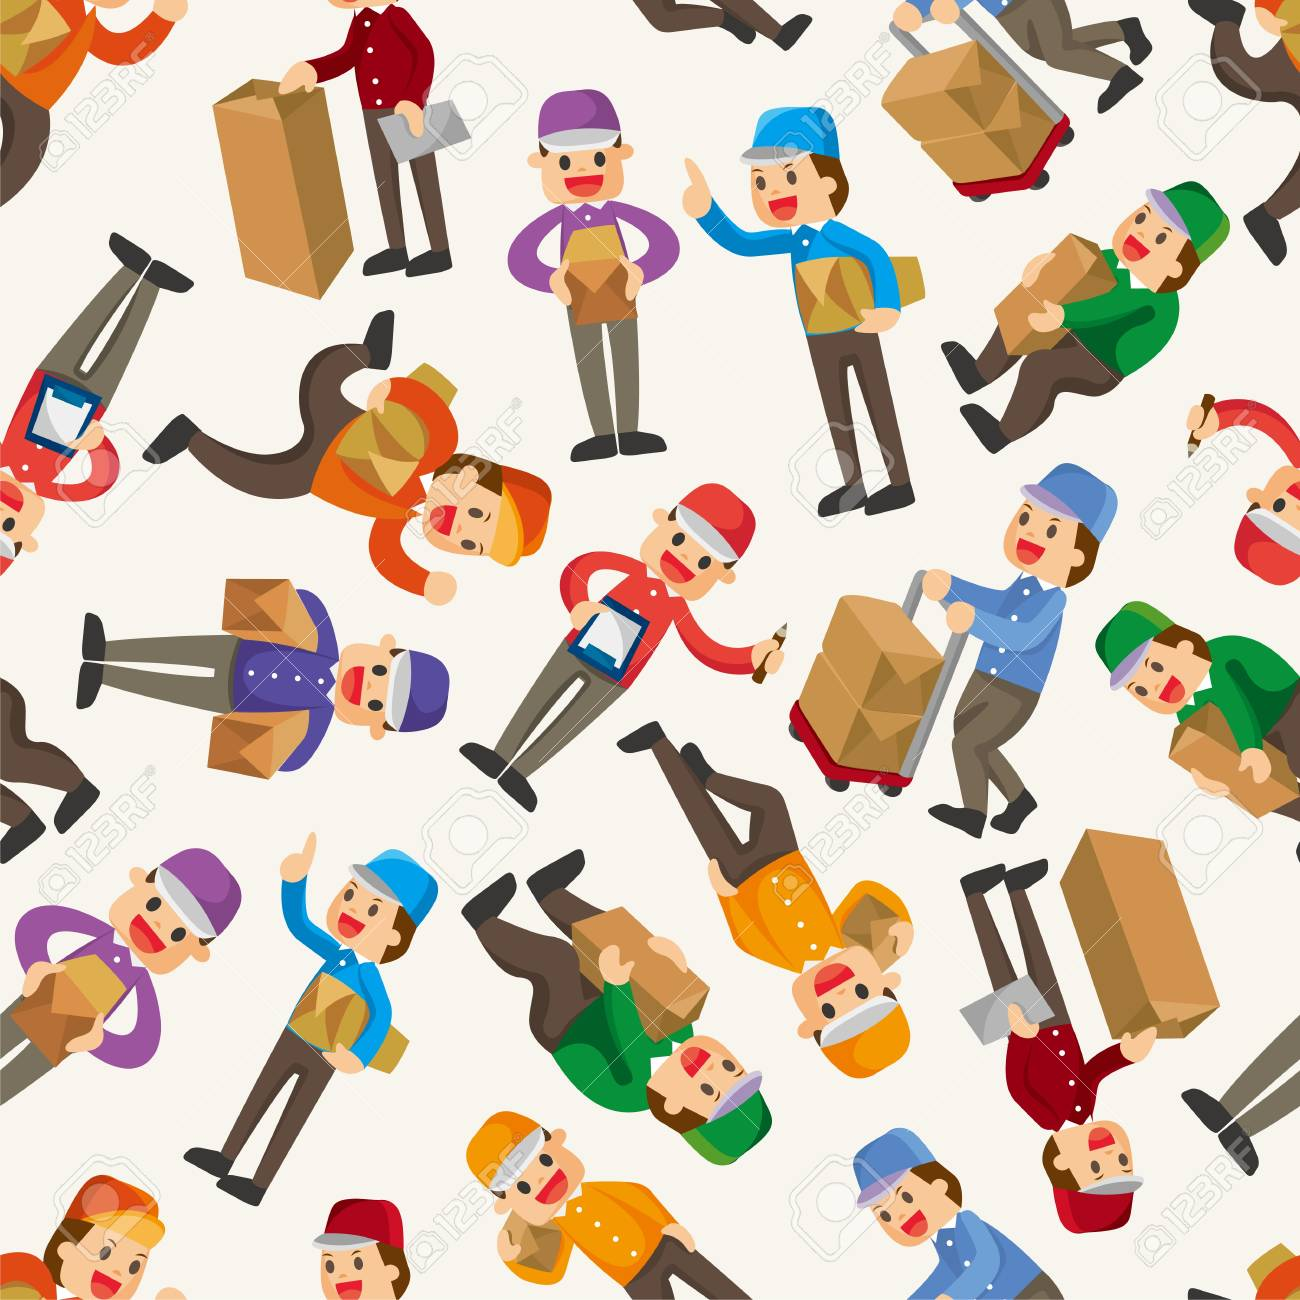 Express delivery people seamless pattern Stock Vector - 12816560